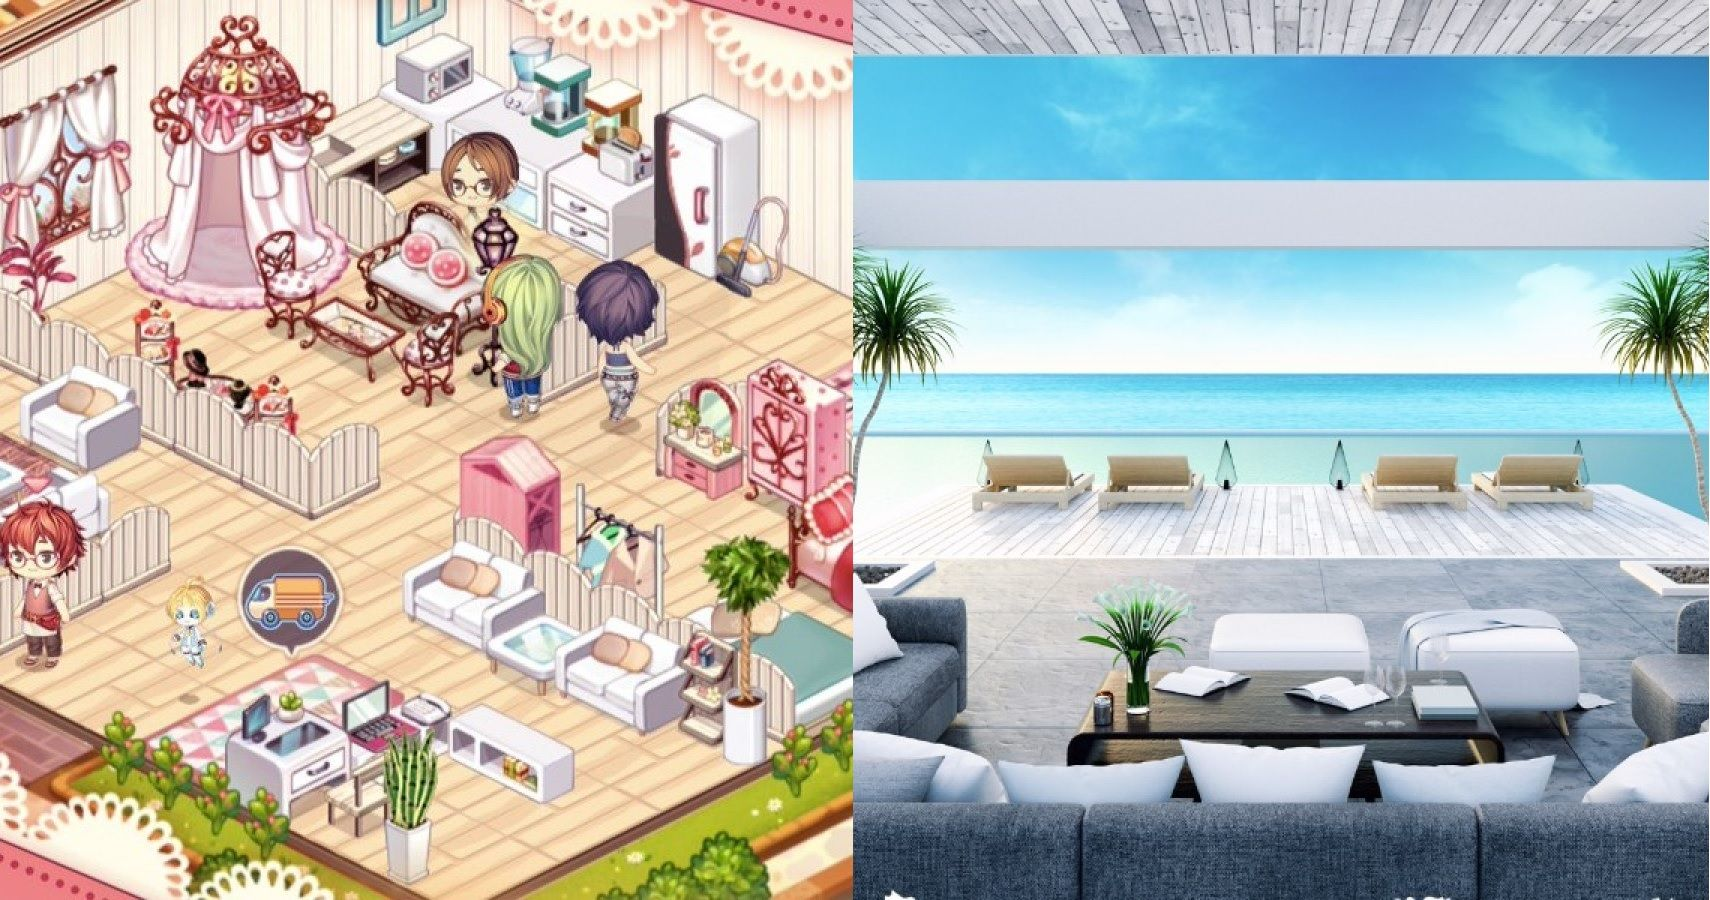 15 Interior Design Games That Will Let Out Your Creative Side